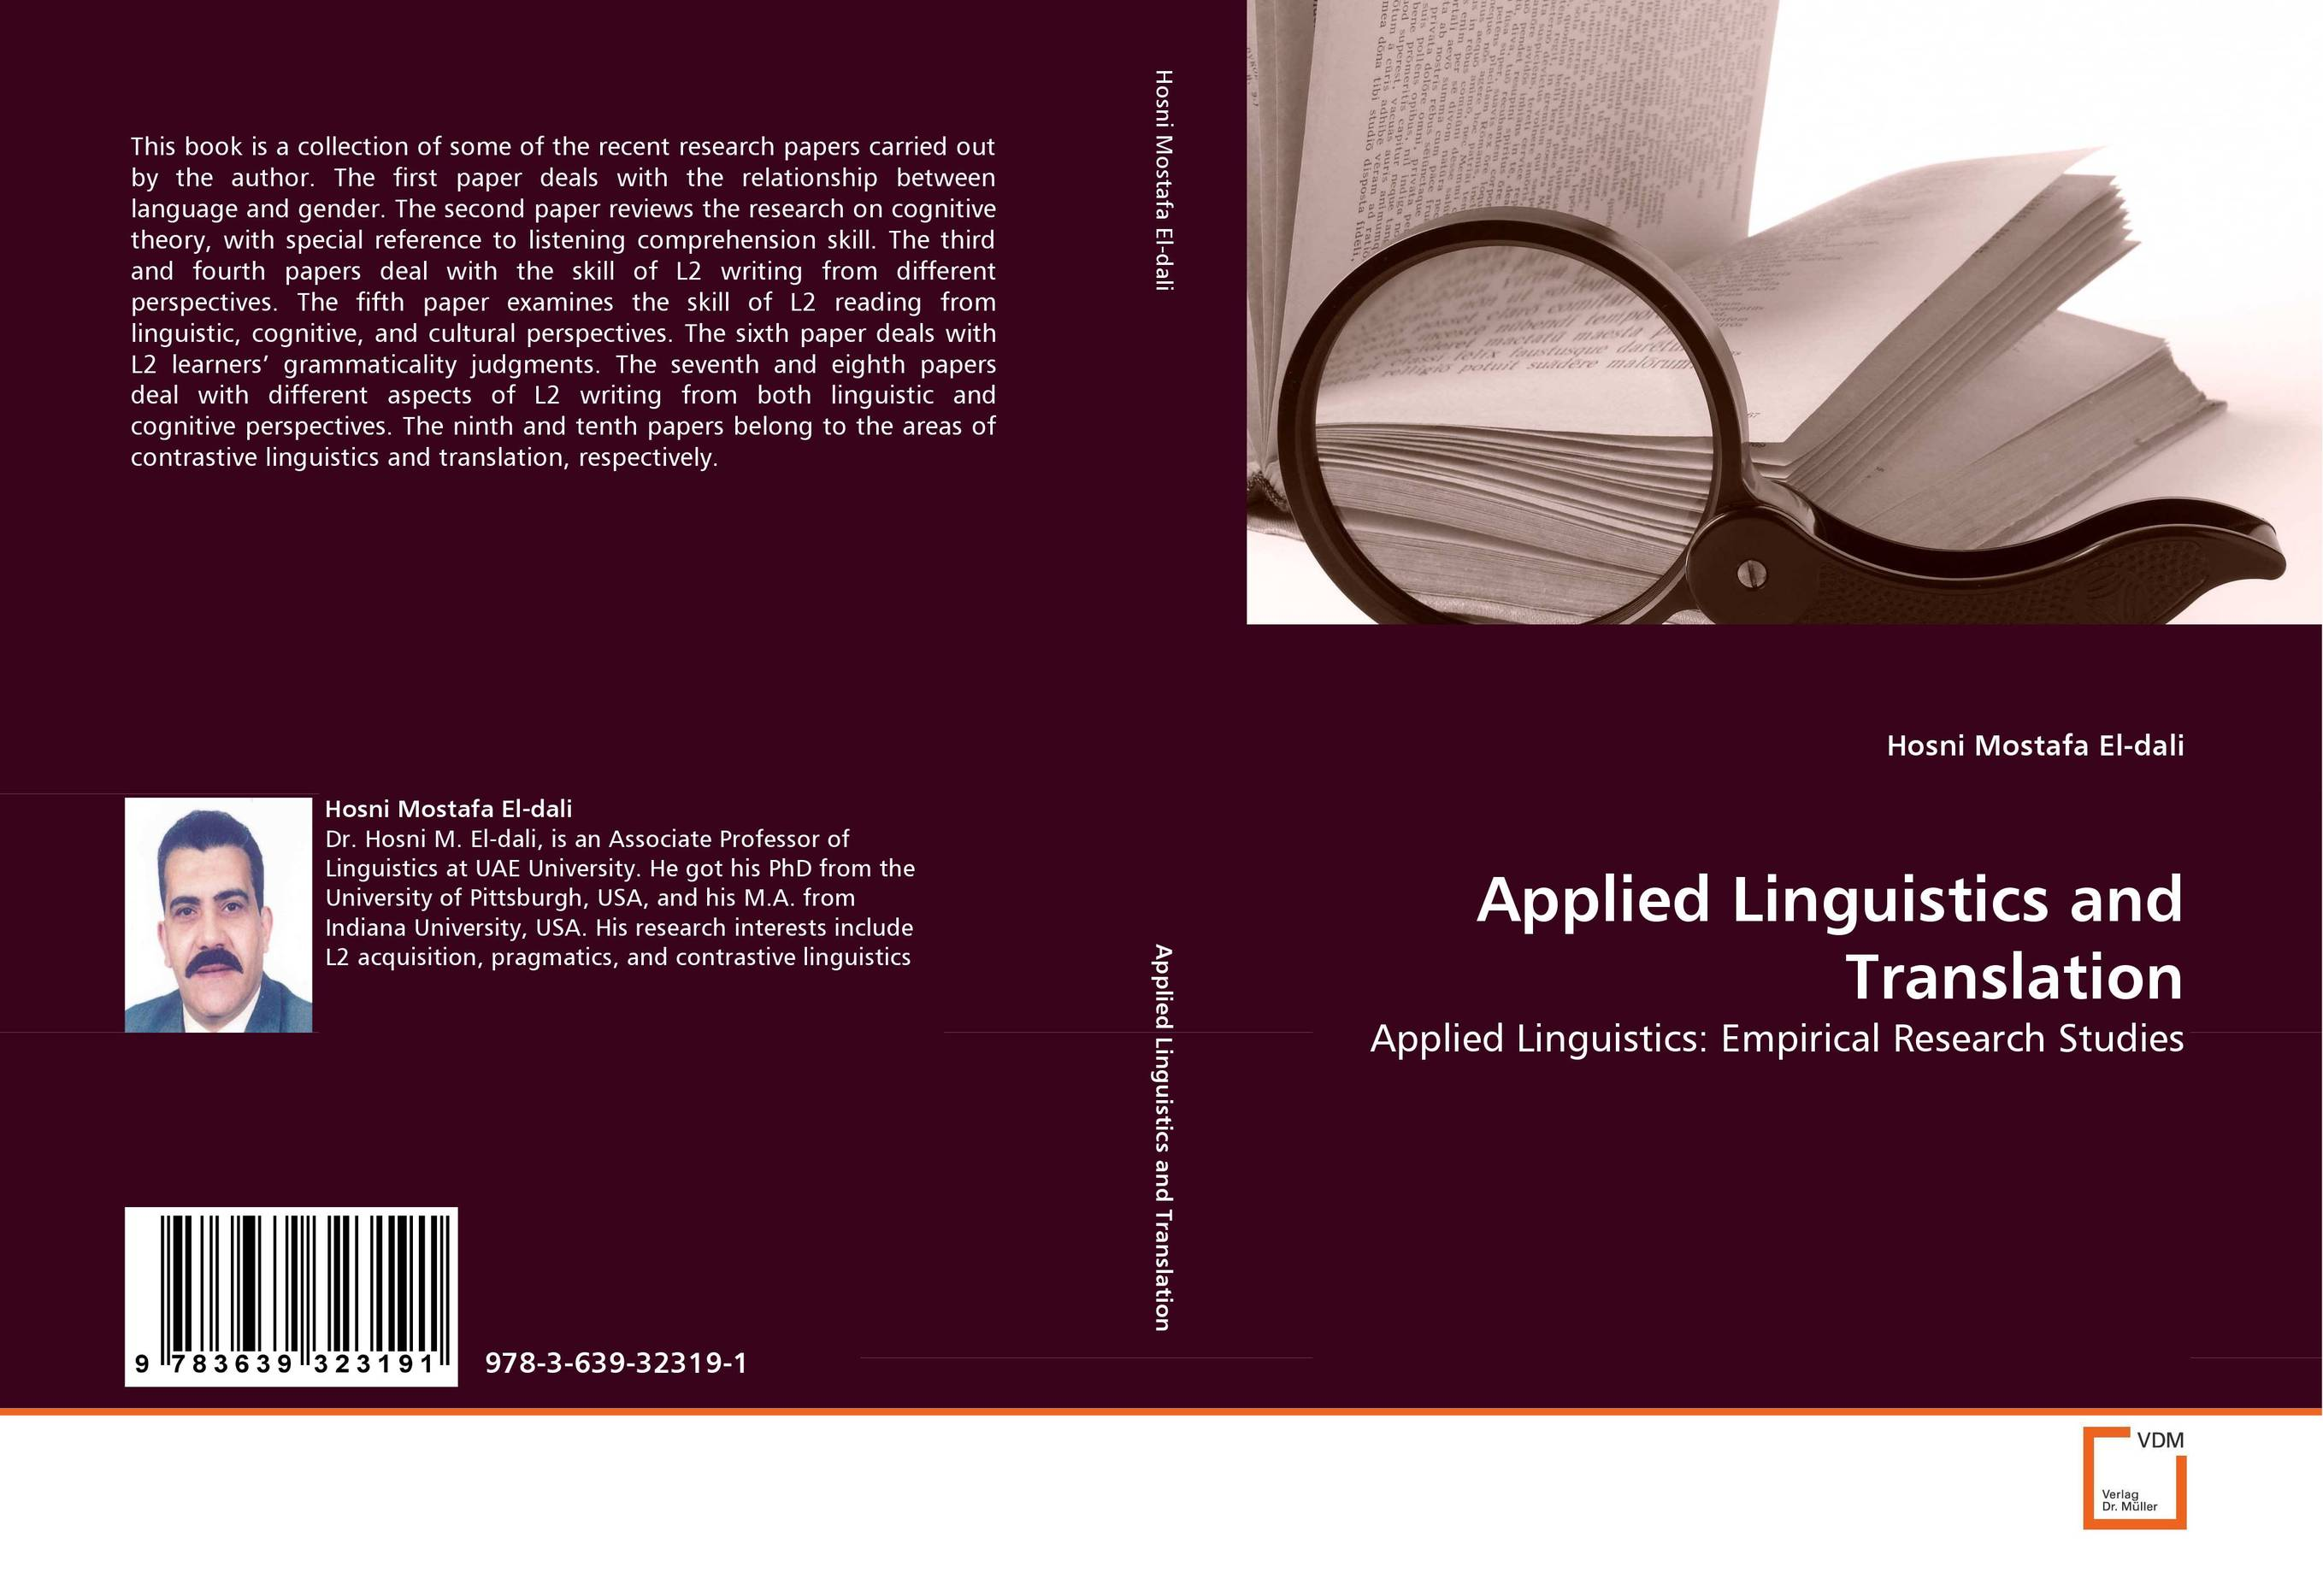 Applied Linguistics and Translation